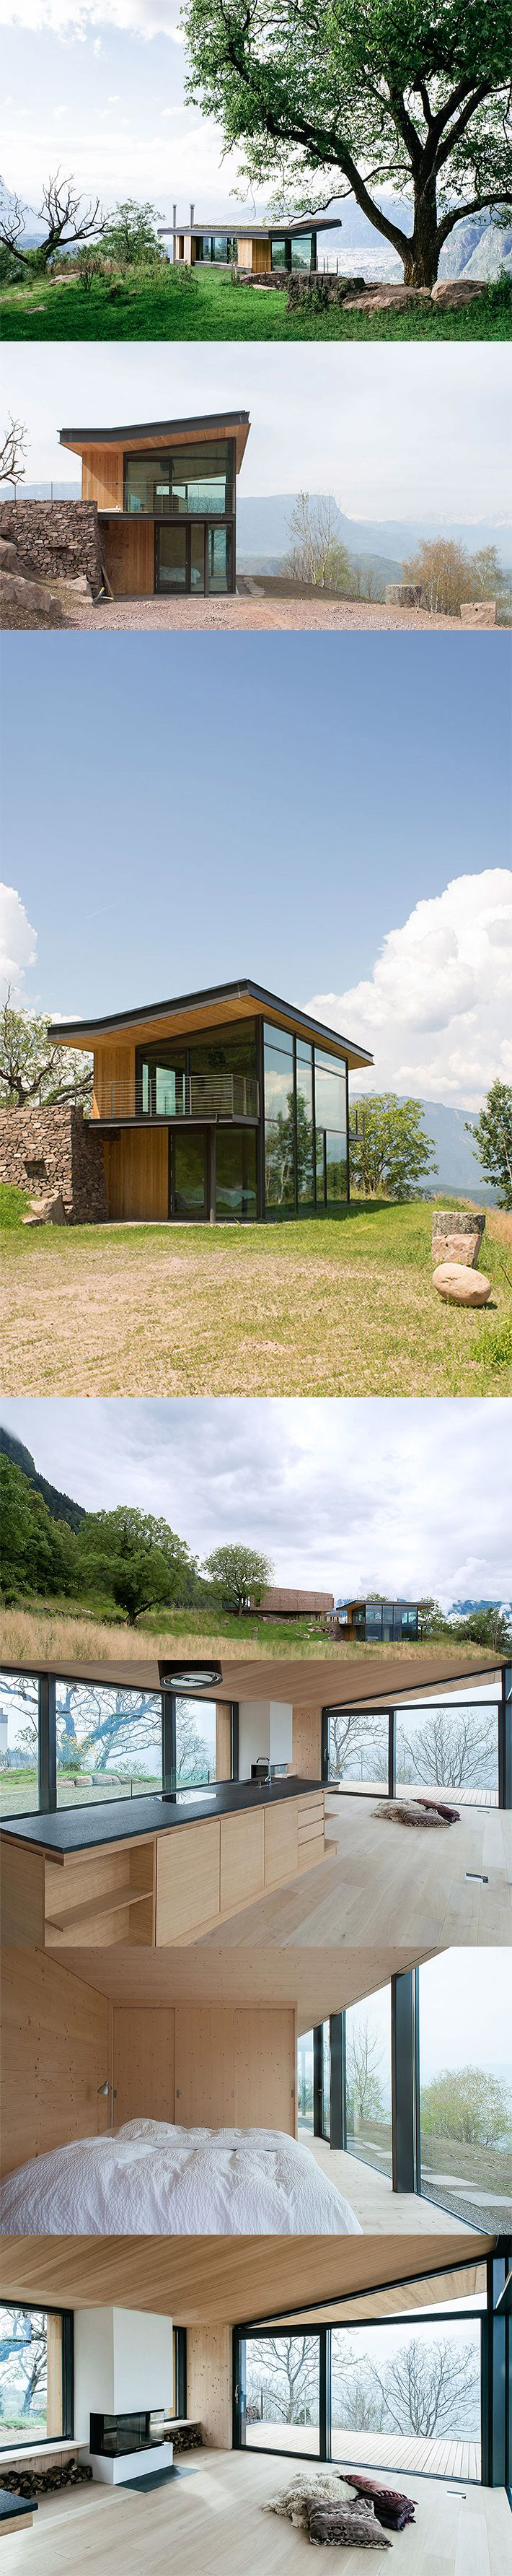 112 best Haus images on Pinterest | Facades, Barn and Barn houses